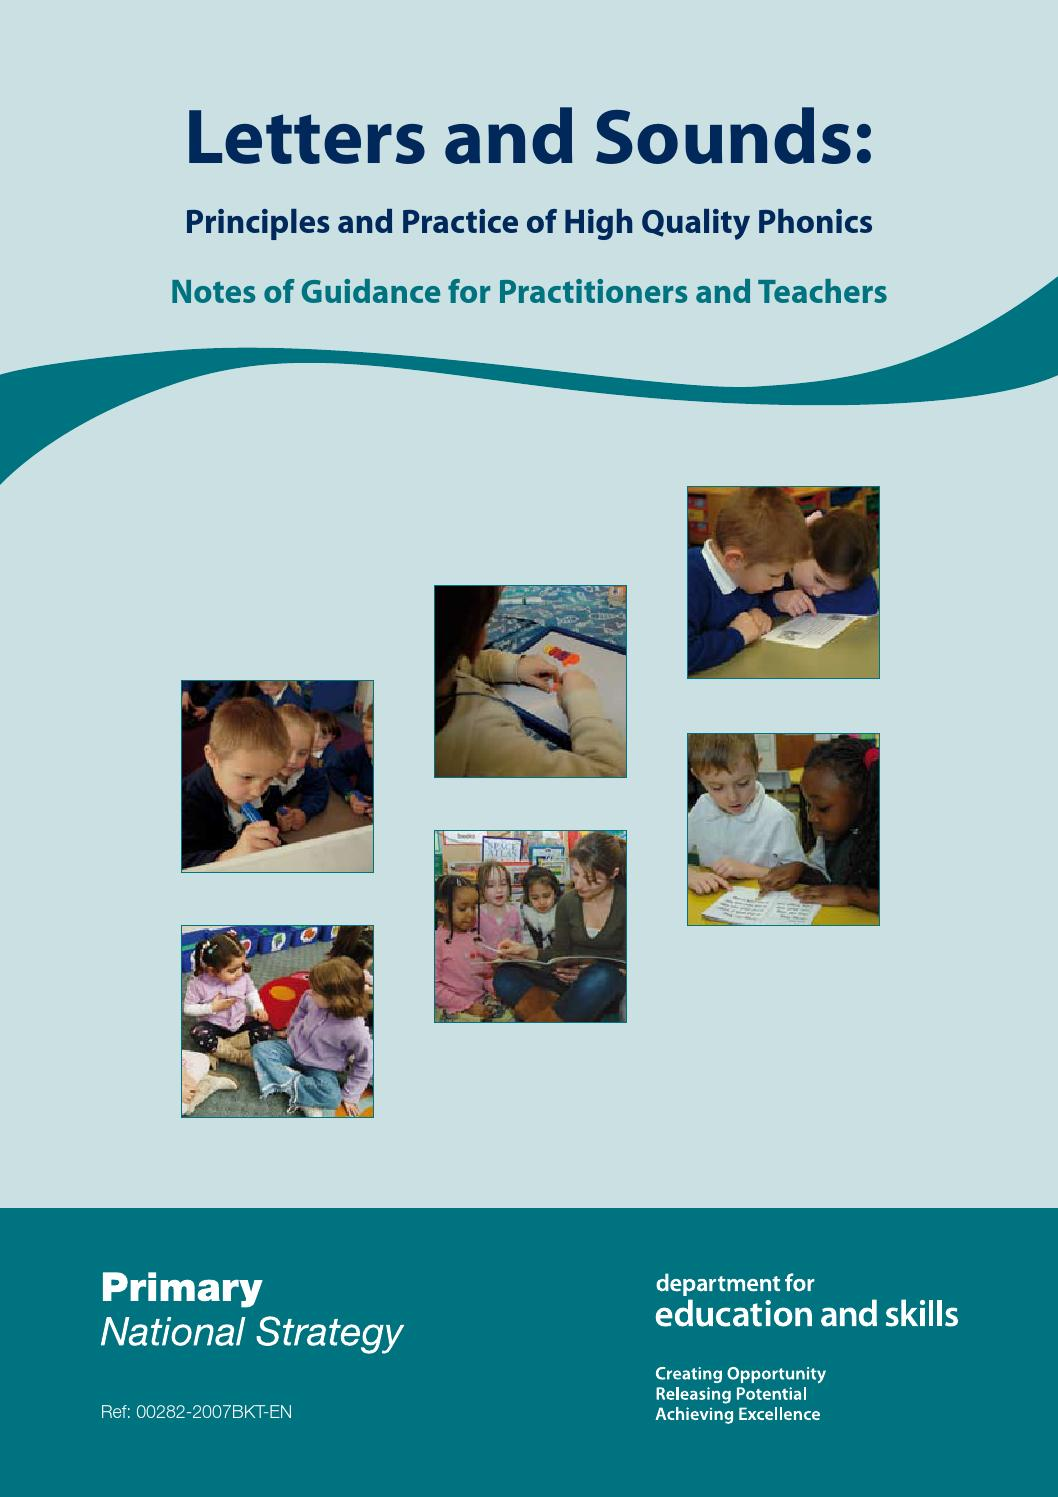 Letters and Sounds: Notes of Guidance to the Practioners and Teachers by ETC Educational Technology Connection (HK) Ltd - issuu